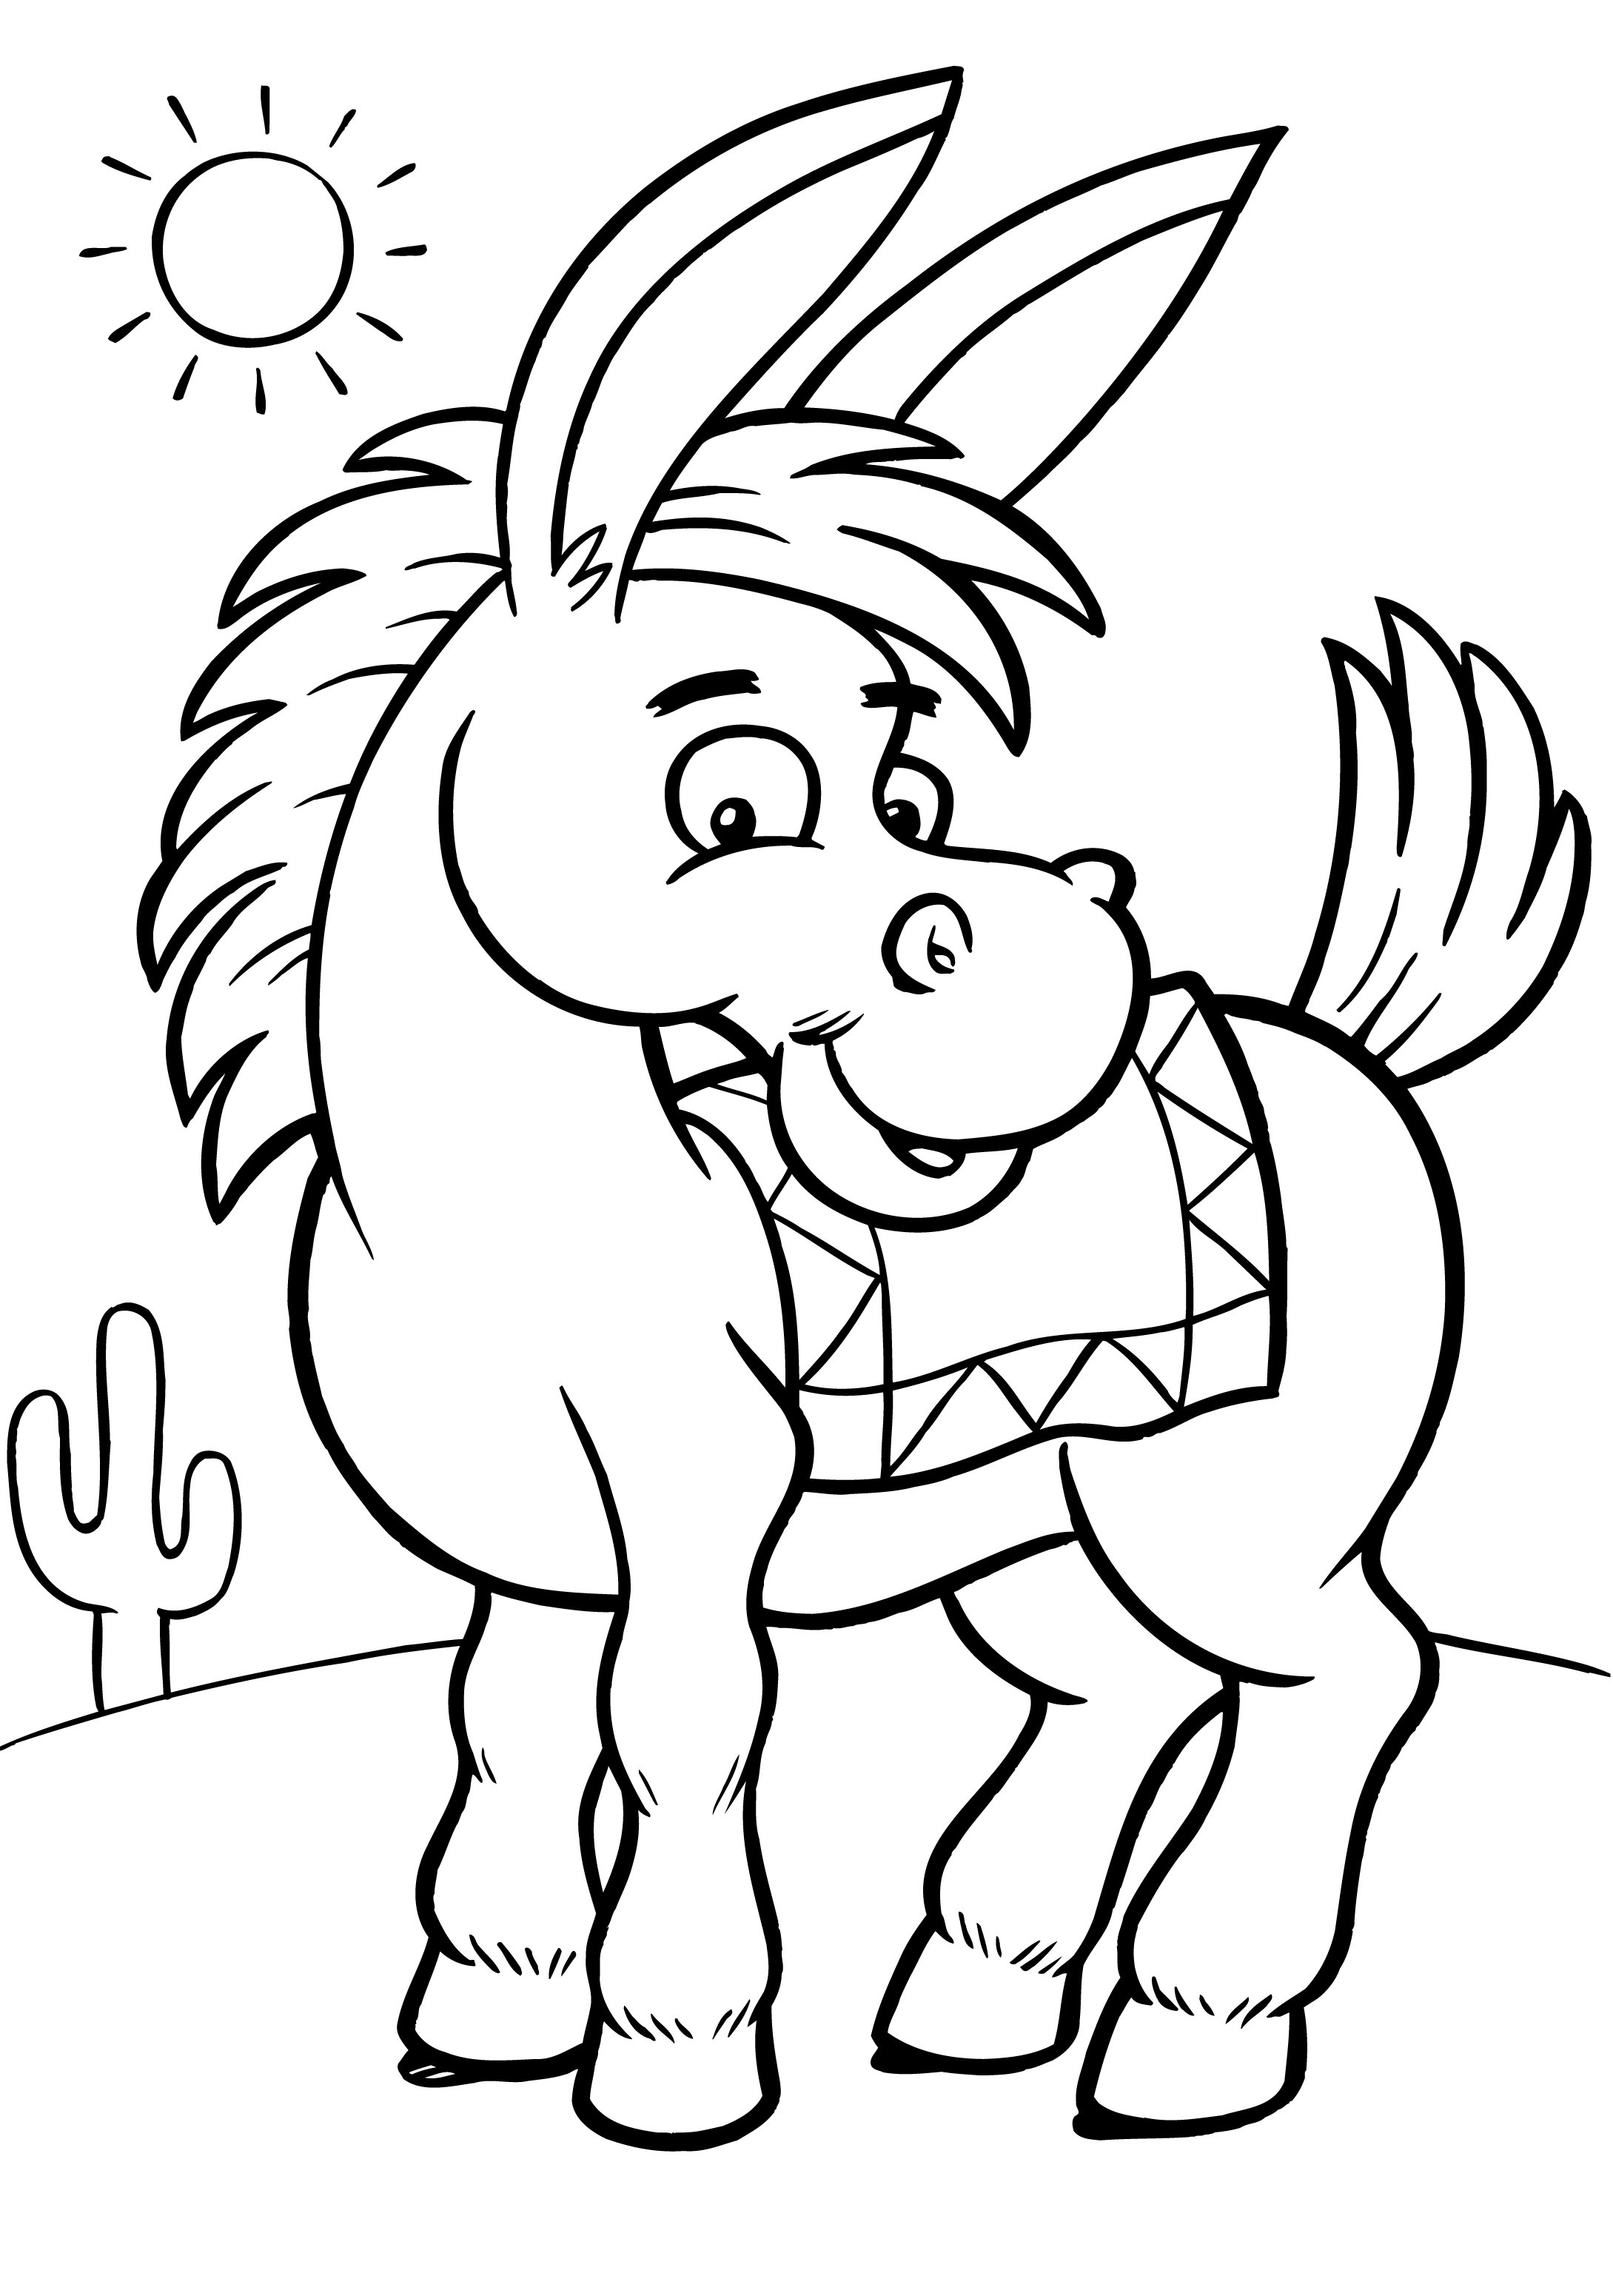 coloring pages for kids to print disney coloring pages to download and print for free print for to kids coloring pages